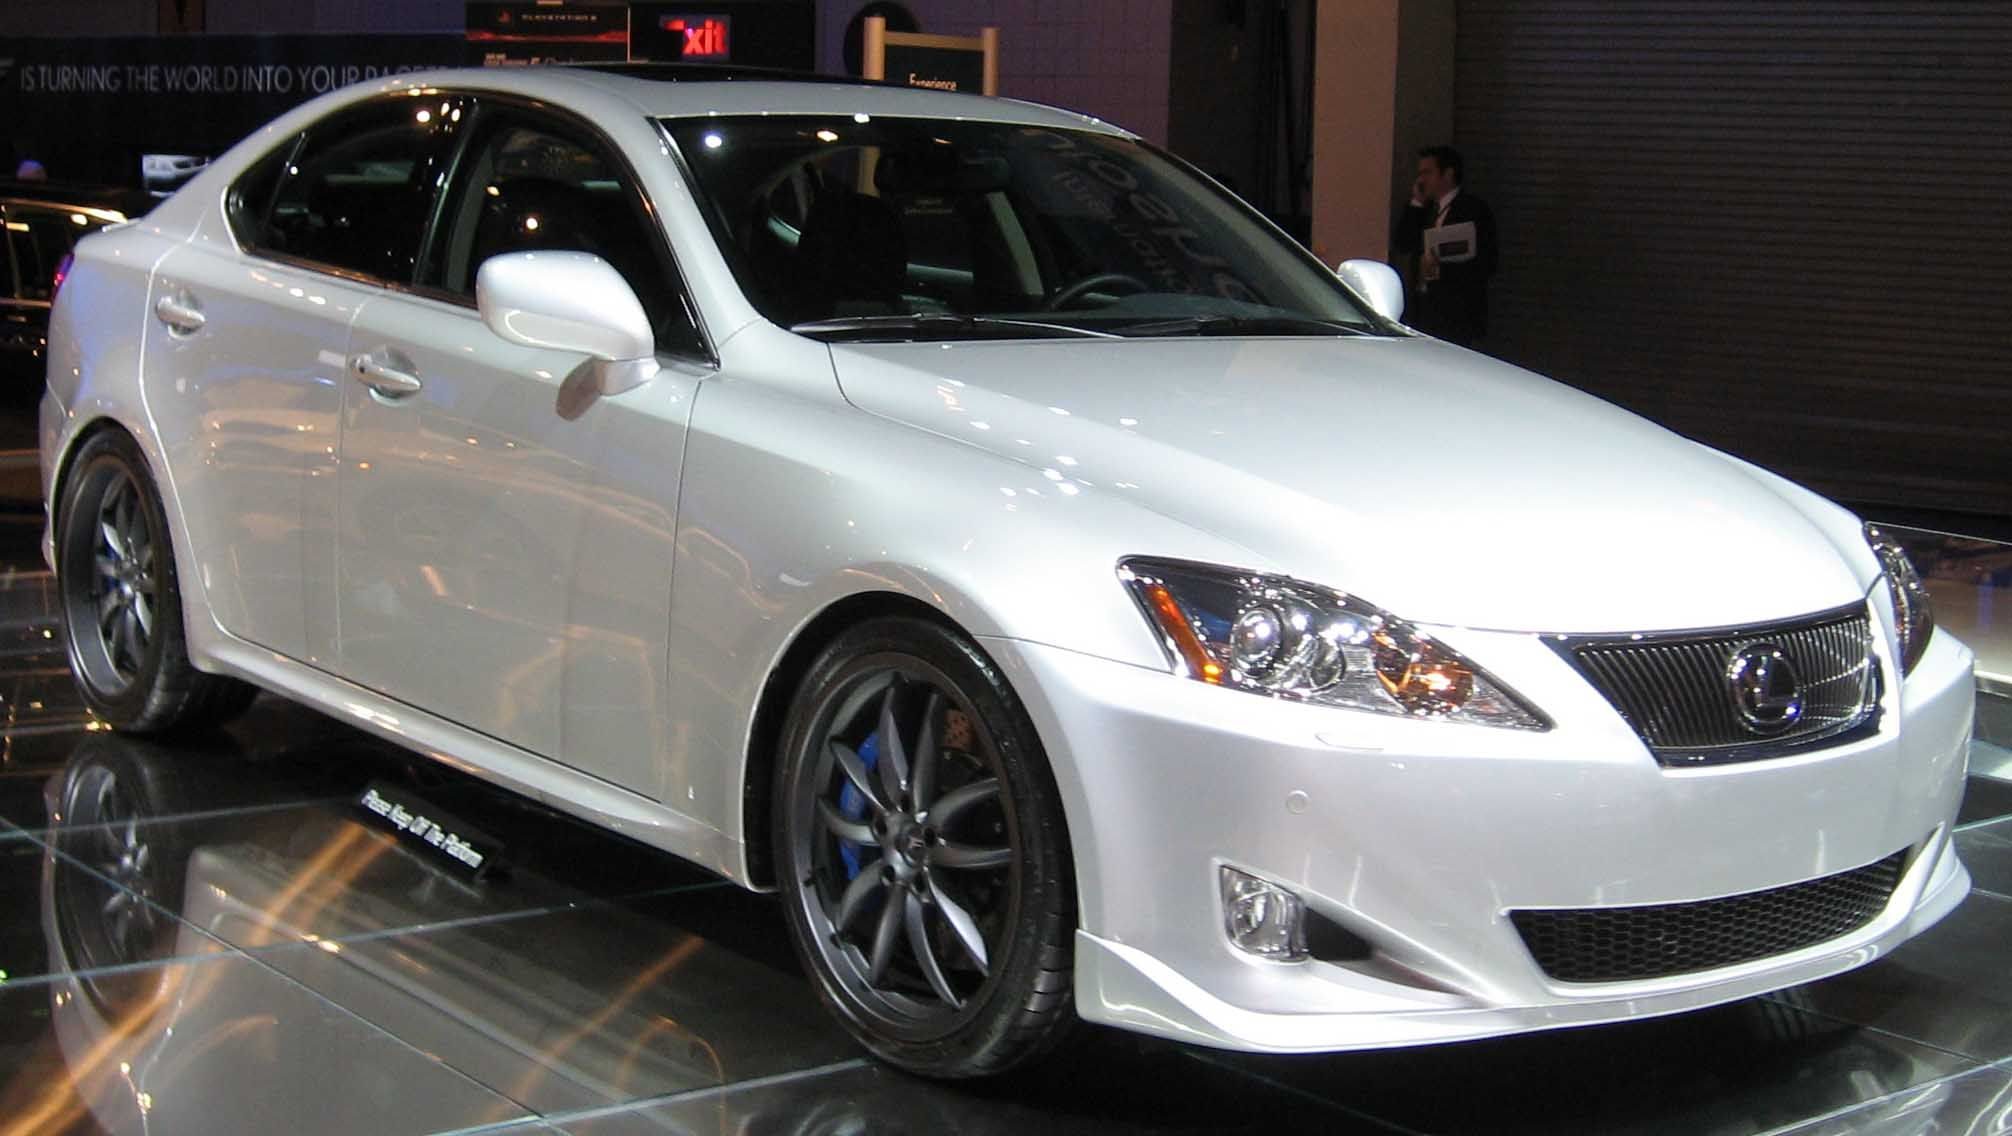 Dream Car Lexus ISF in pearl white with tinted windows and nice rims